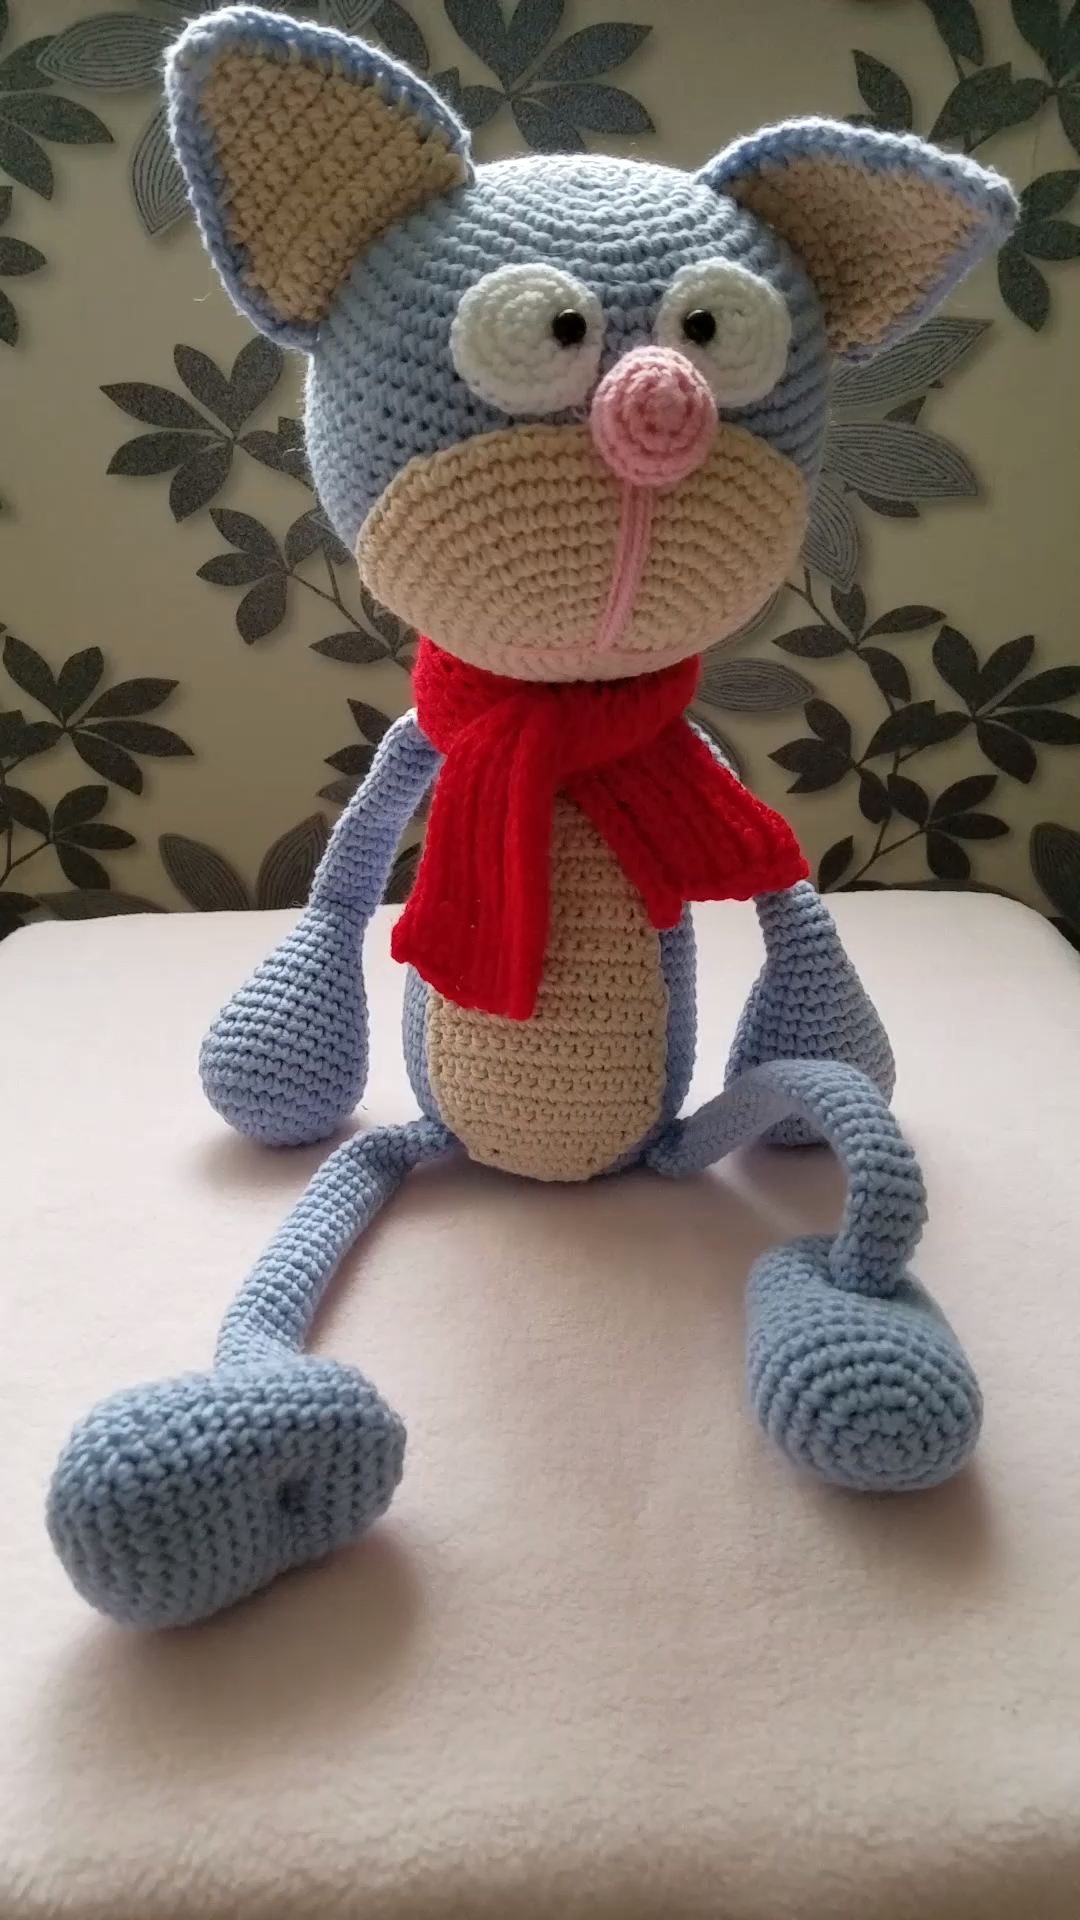 Knitted cat, Cat toy, Knitted animals, Knitted cat toy, Knitted child toy, Handmade amigurumi toy, Soft toy, Interior toy, Animal doll